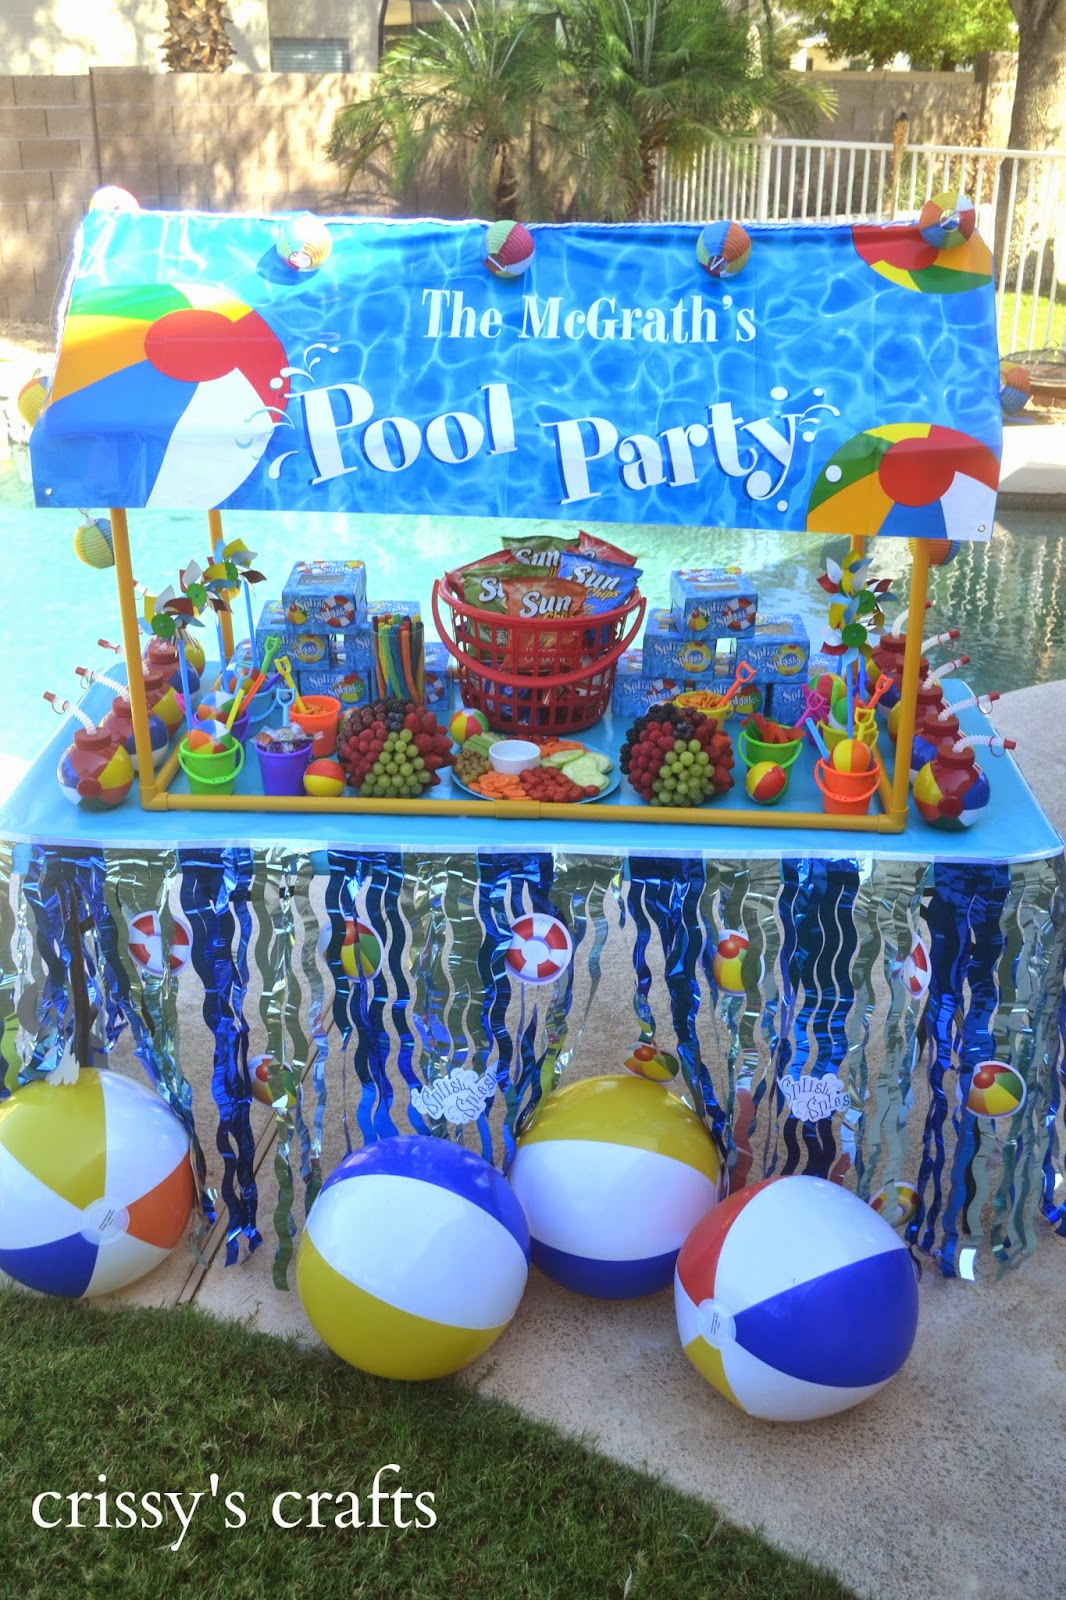 Party Piscina Crissy 39s Crafts Pool Party Summer 2014